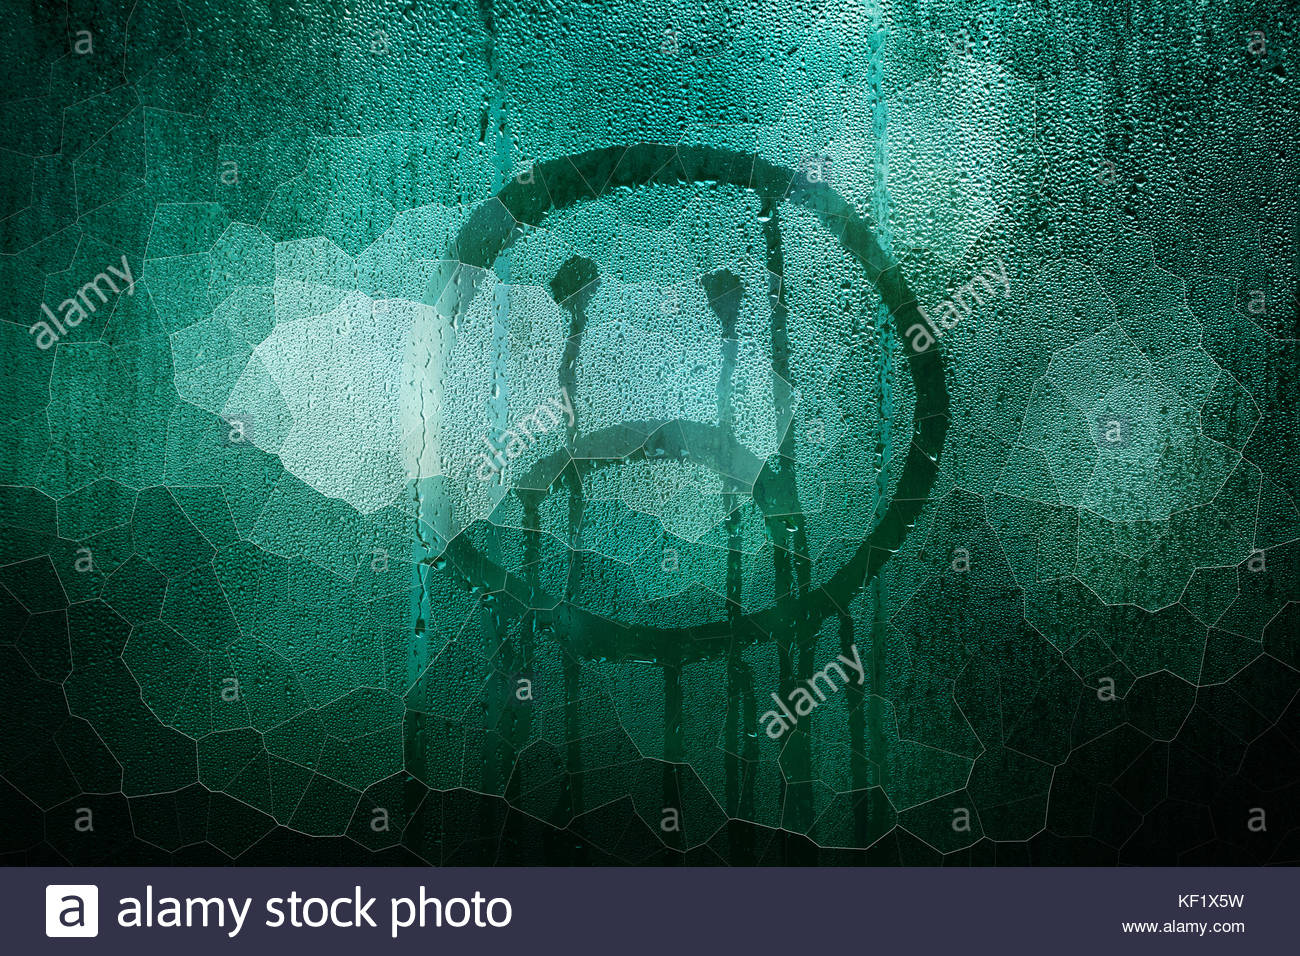 Sad upside down smiley hand drawn symbol on wet broken glass stock sad upside down smiley hand drawn symbol on wet broken glass background buycottarizona